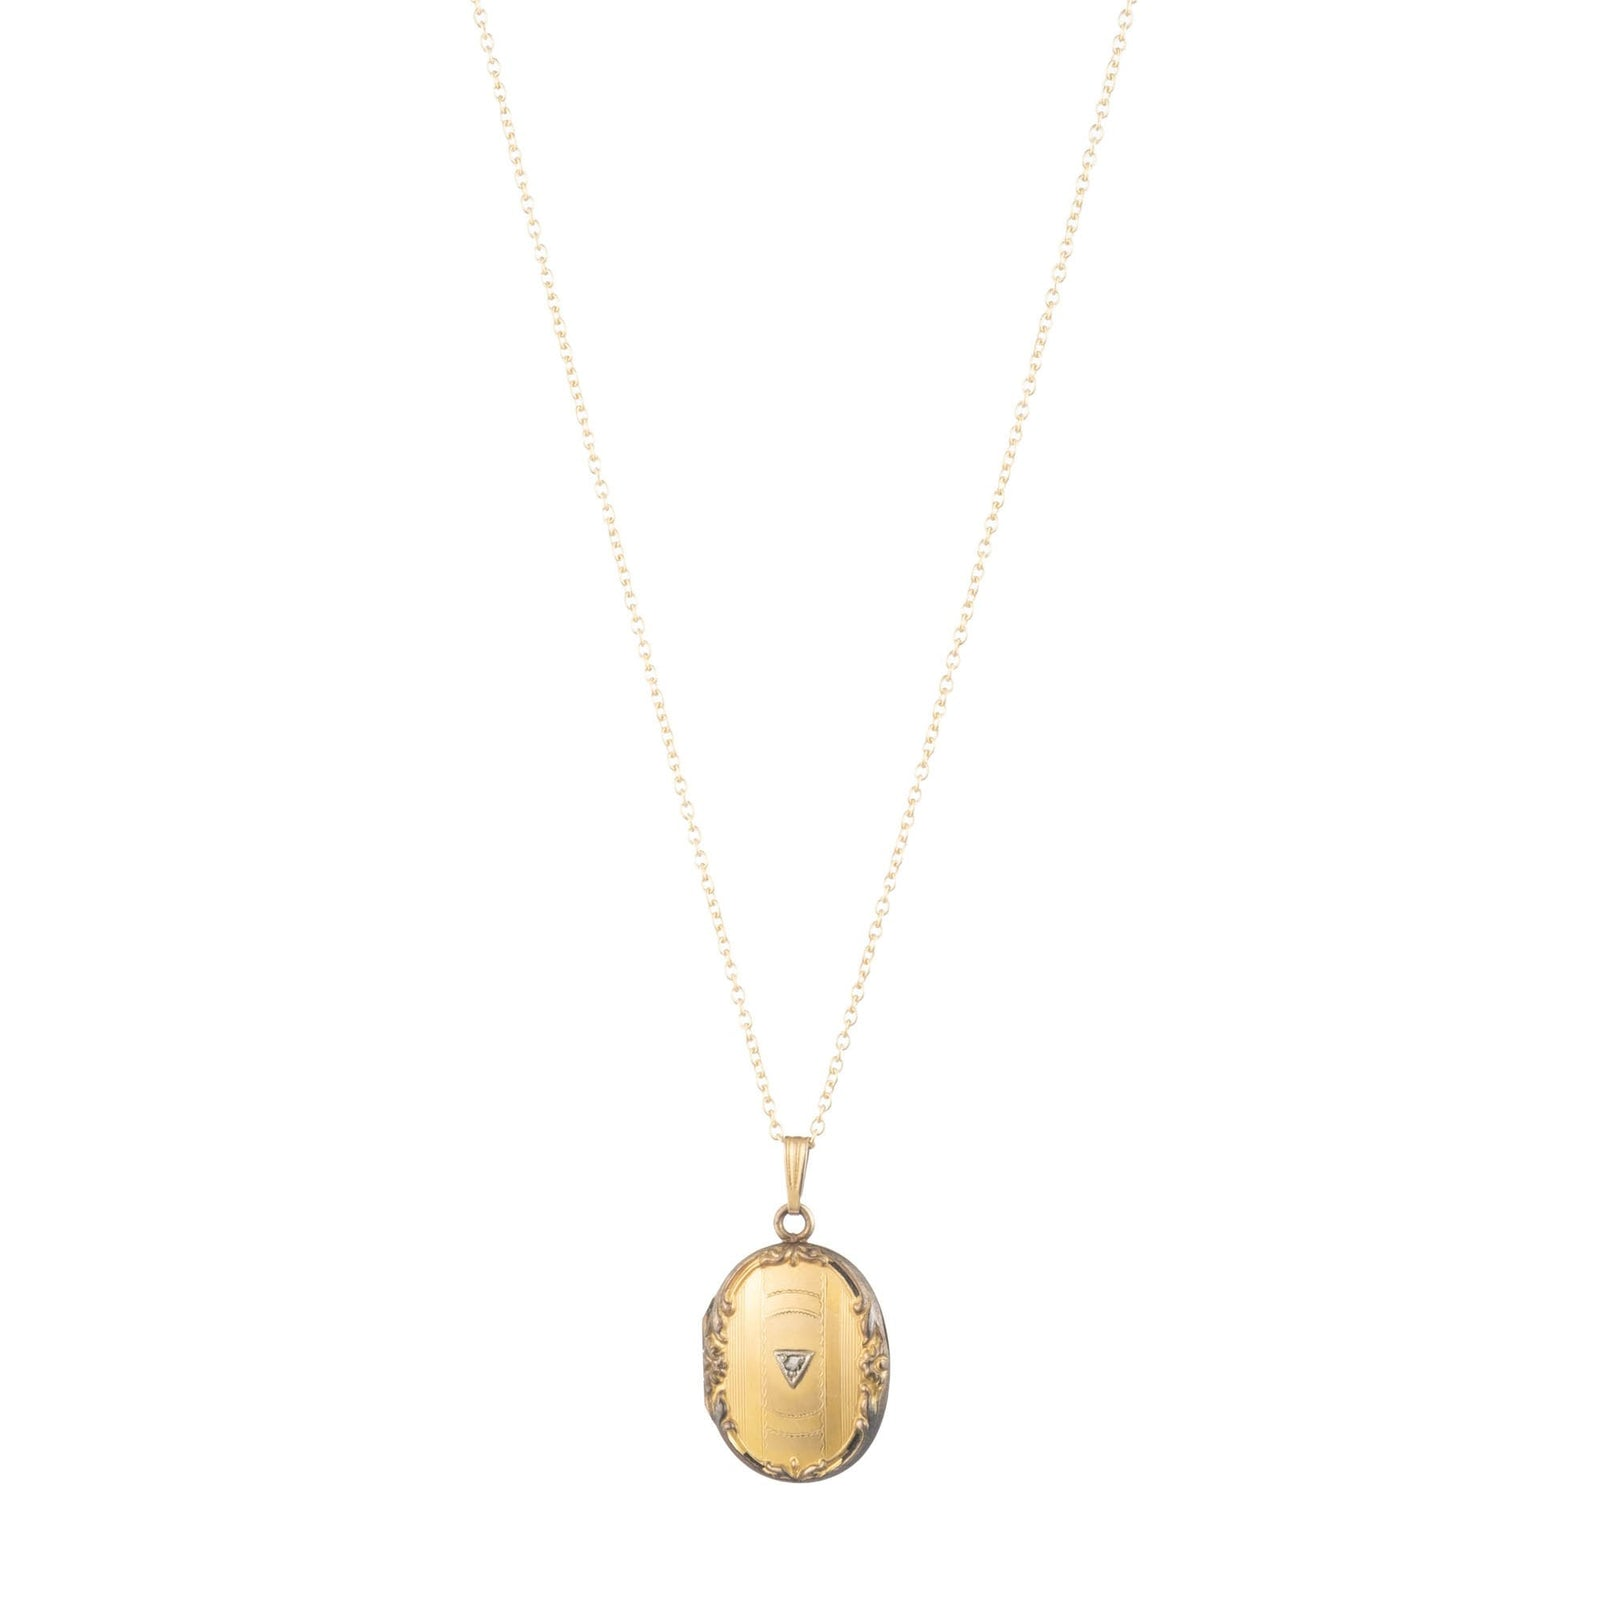 Antique Gold Filled Oval Locket Necklace with Diamond